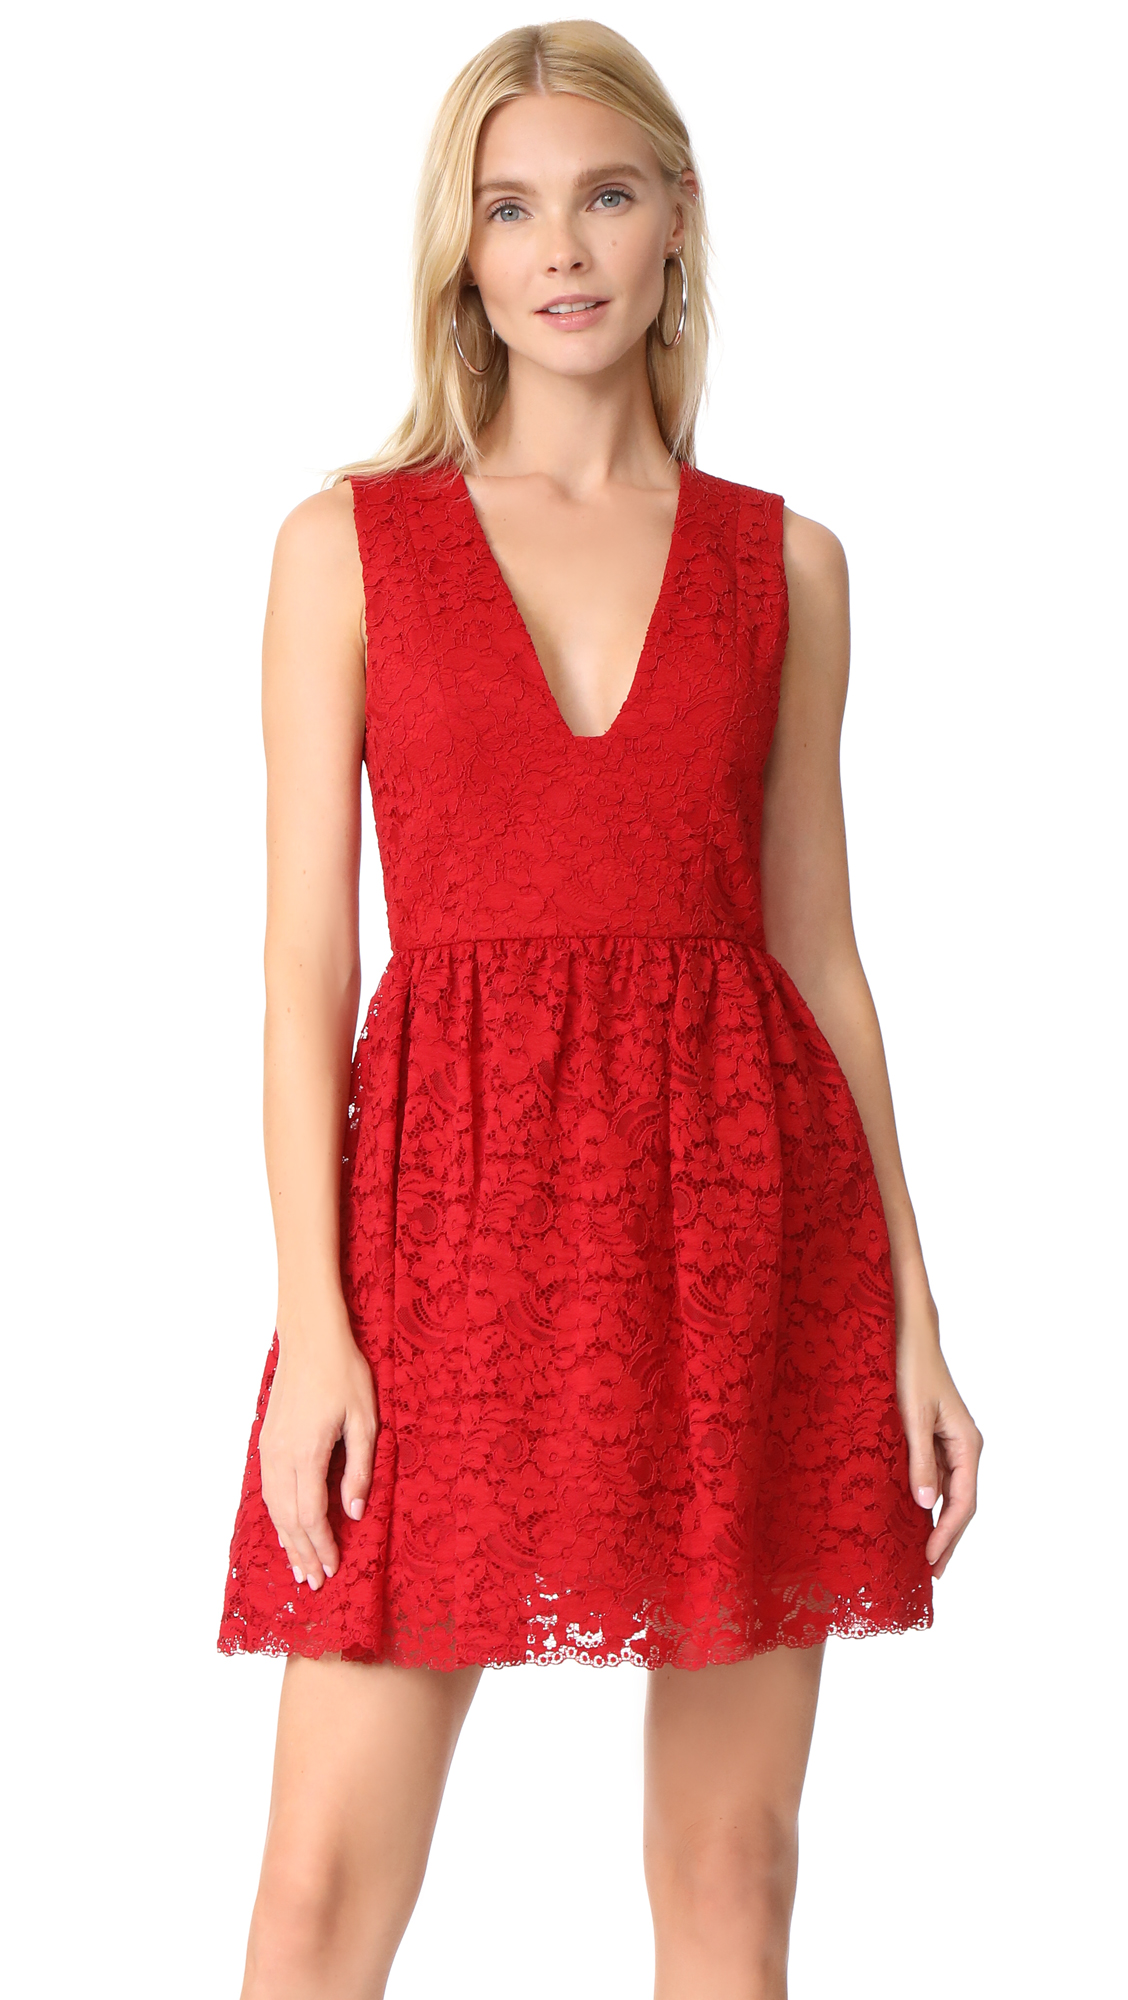 alice + olivia Kappa Party Dress - Deep Ruby